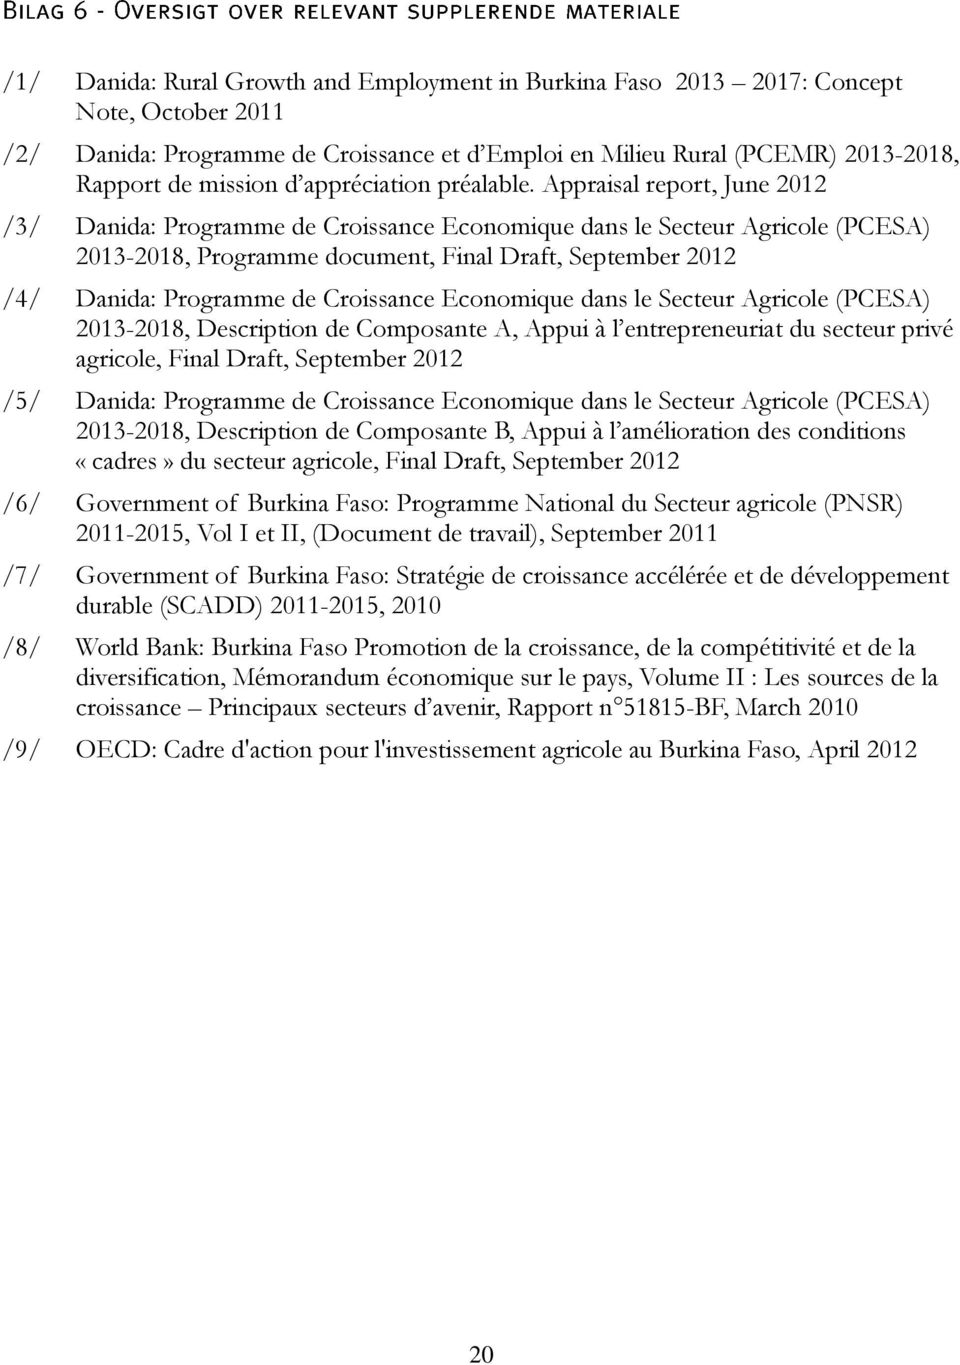 Appraisal report, June 2012 /3/ Danida: Programme de Croissance Economique dans le Secteur Agricole (PCESA) 2013-2018, Programme document, Final Draft, September 2012 /4/ Danida: Programme de